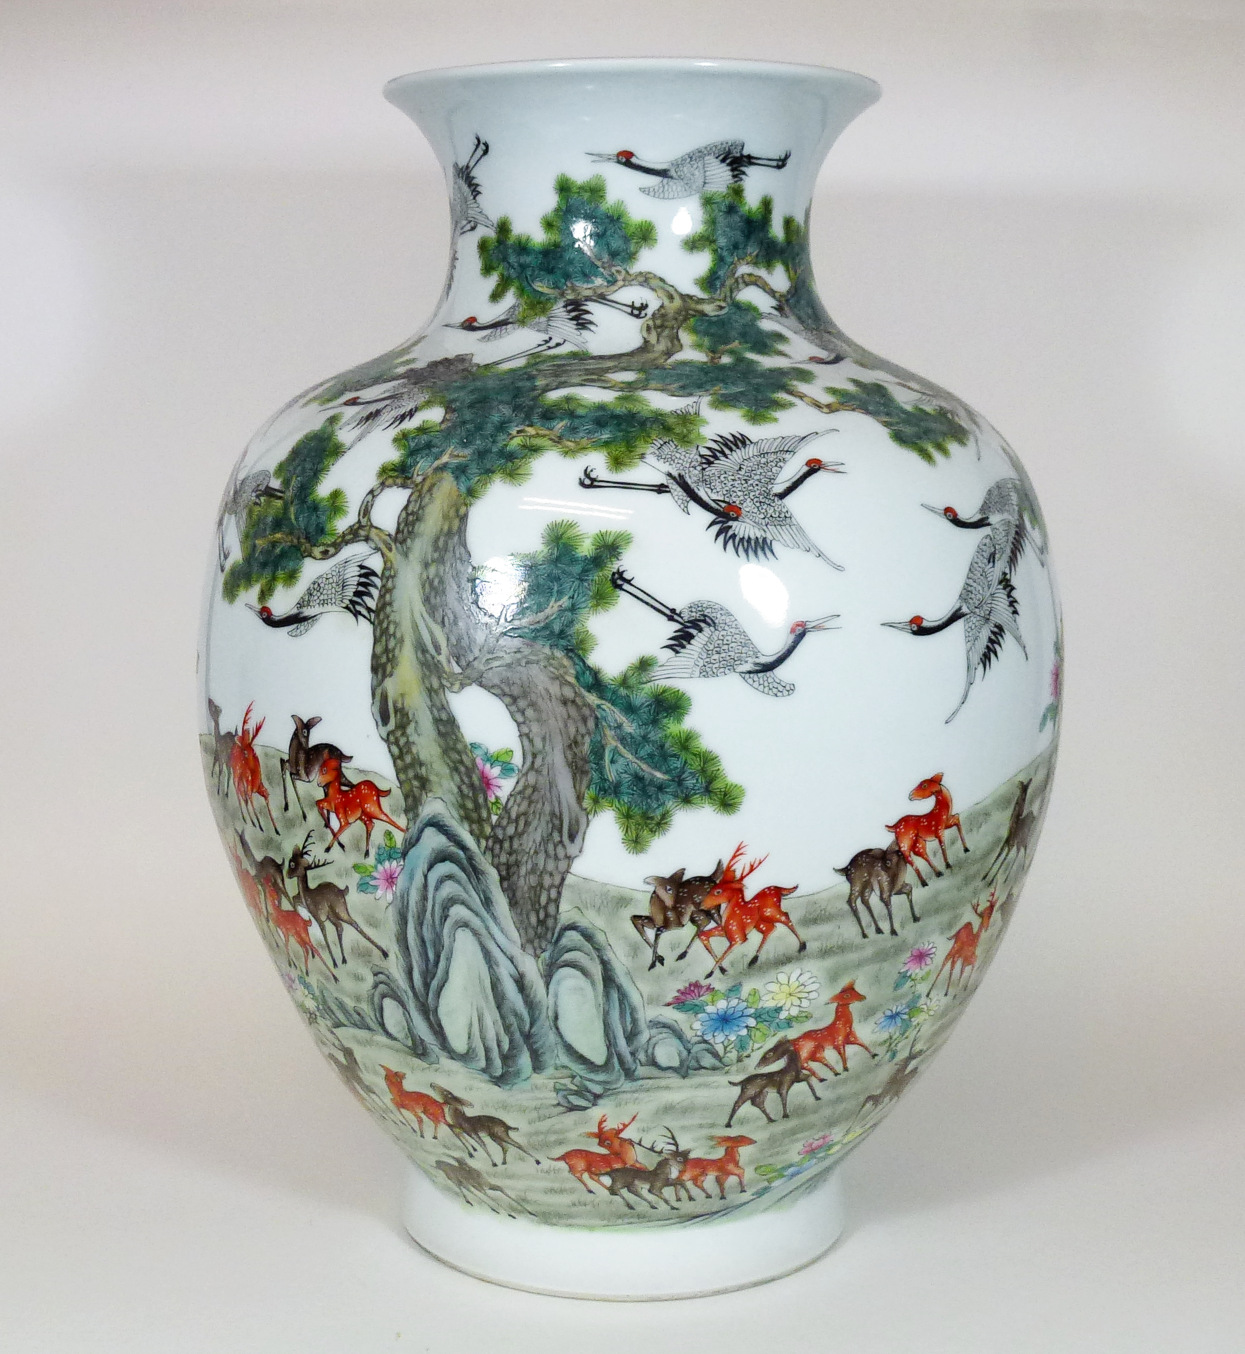 Famille Rose Vase – One Hundred Deers